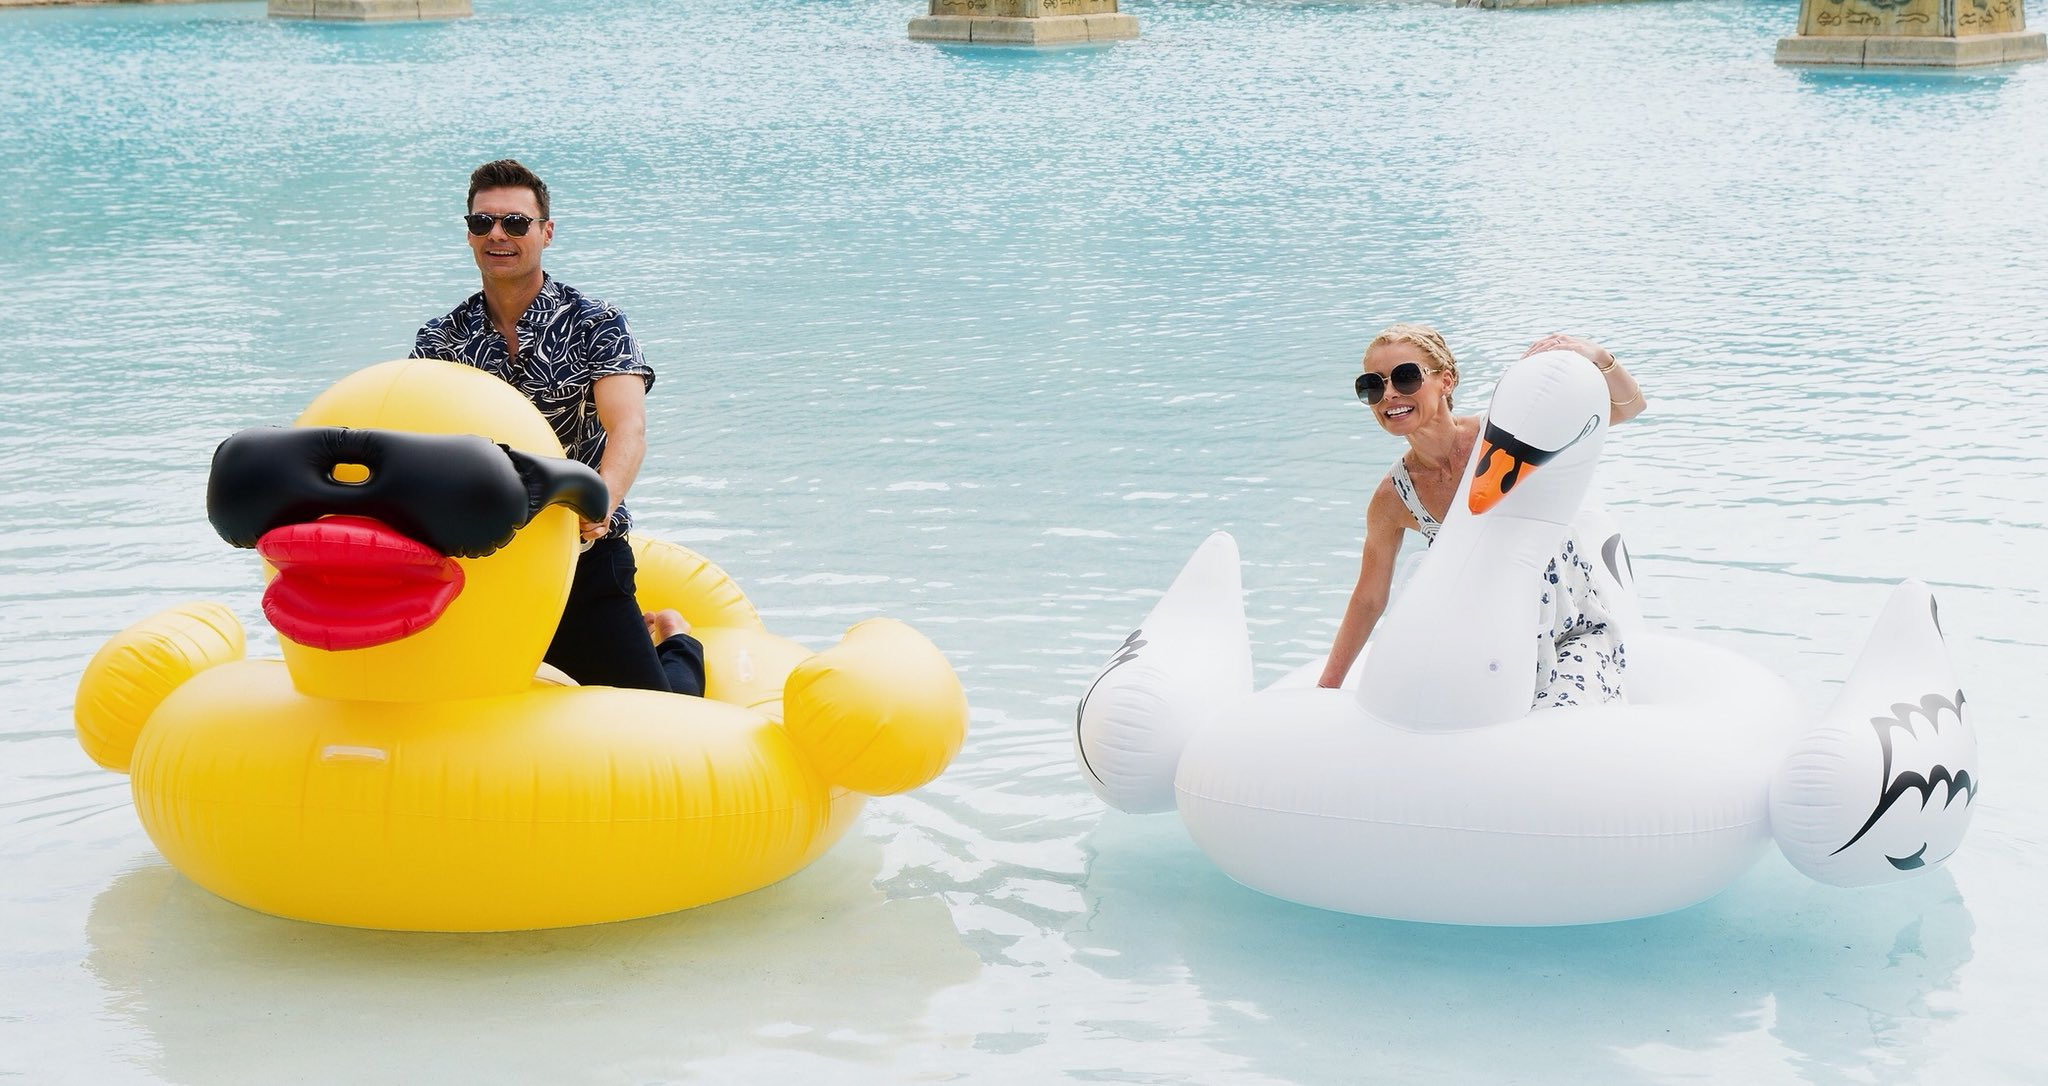 #TrifleTheDiscoSwan made it to the Bahamas and found a new friend! #kellyandryanatlantis #itsbetterinthebahamas https://t.co/NV43iIE0gD